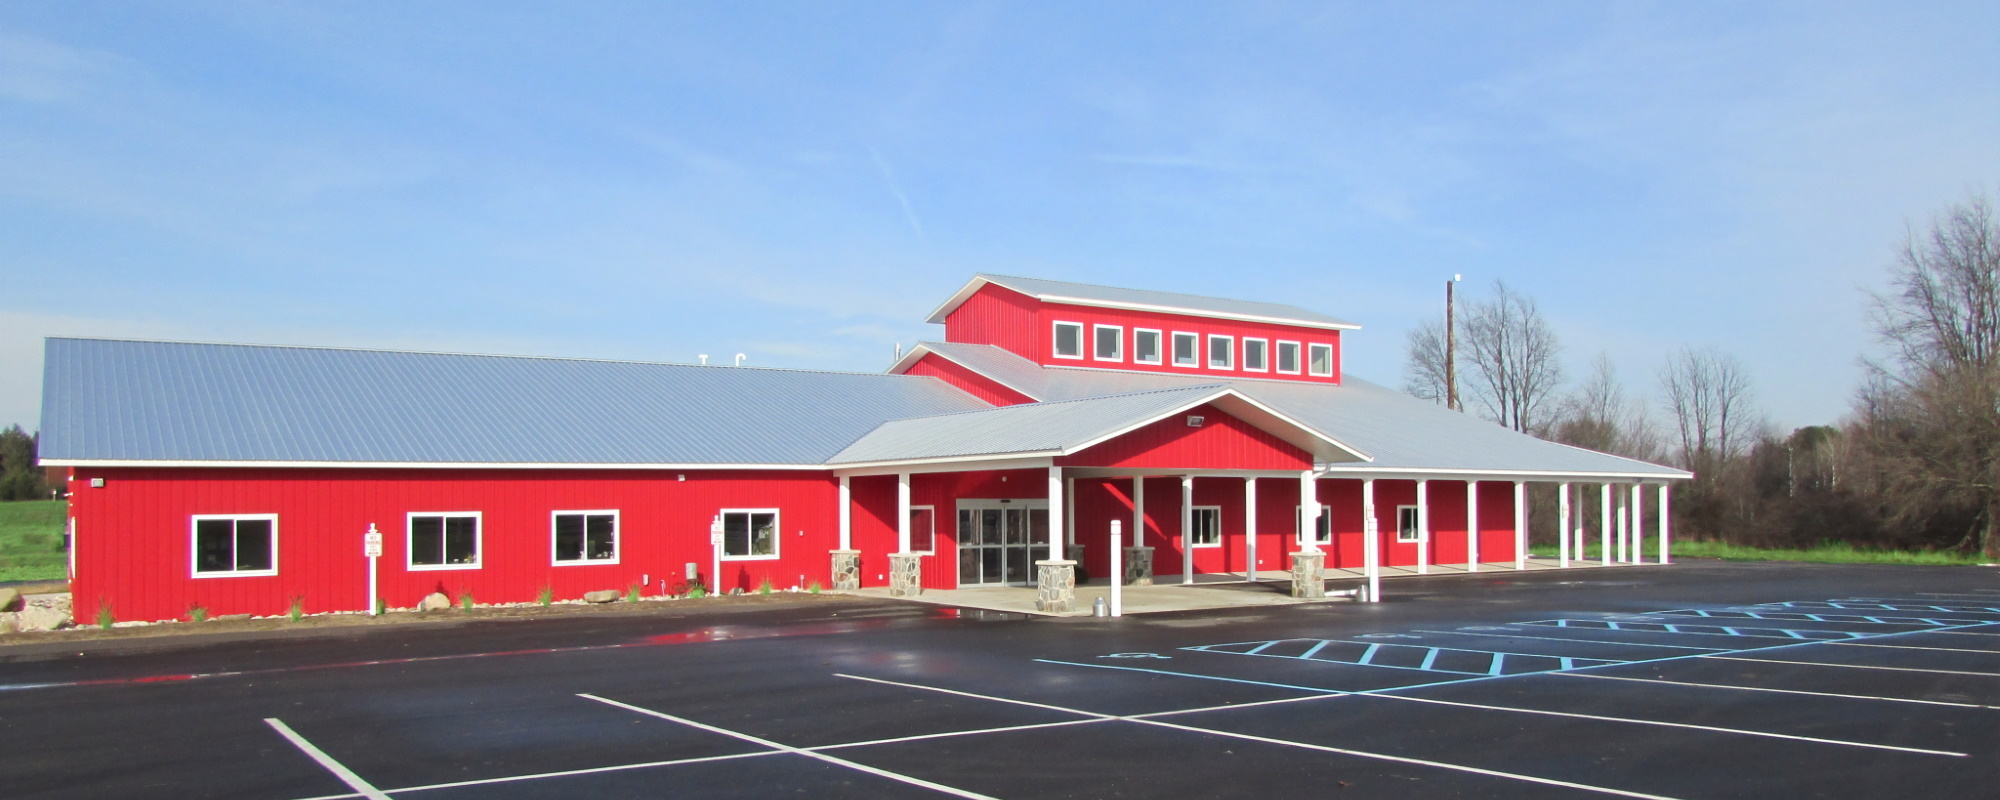 The new senior center pictured from outside.